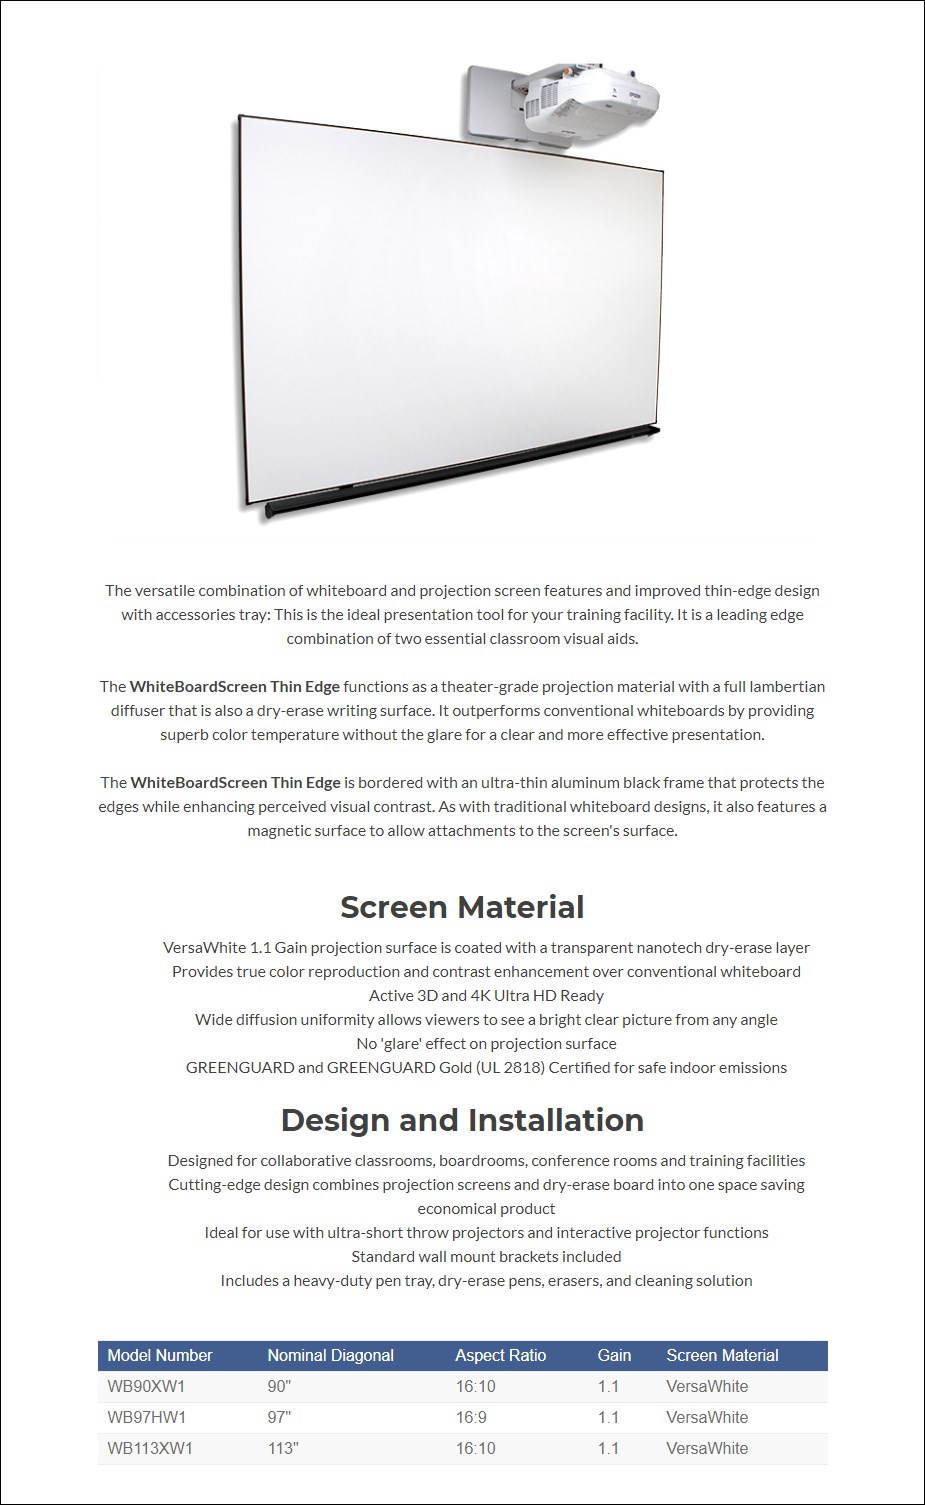 Elite Screens Whiteboard Thin-Edge Projection Screen - Overview 1